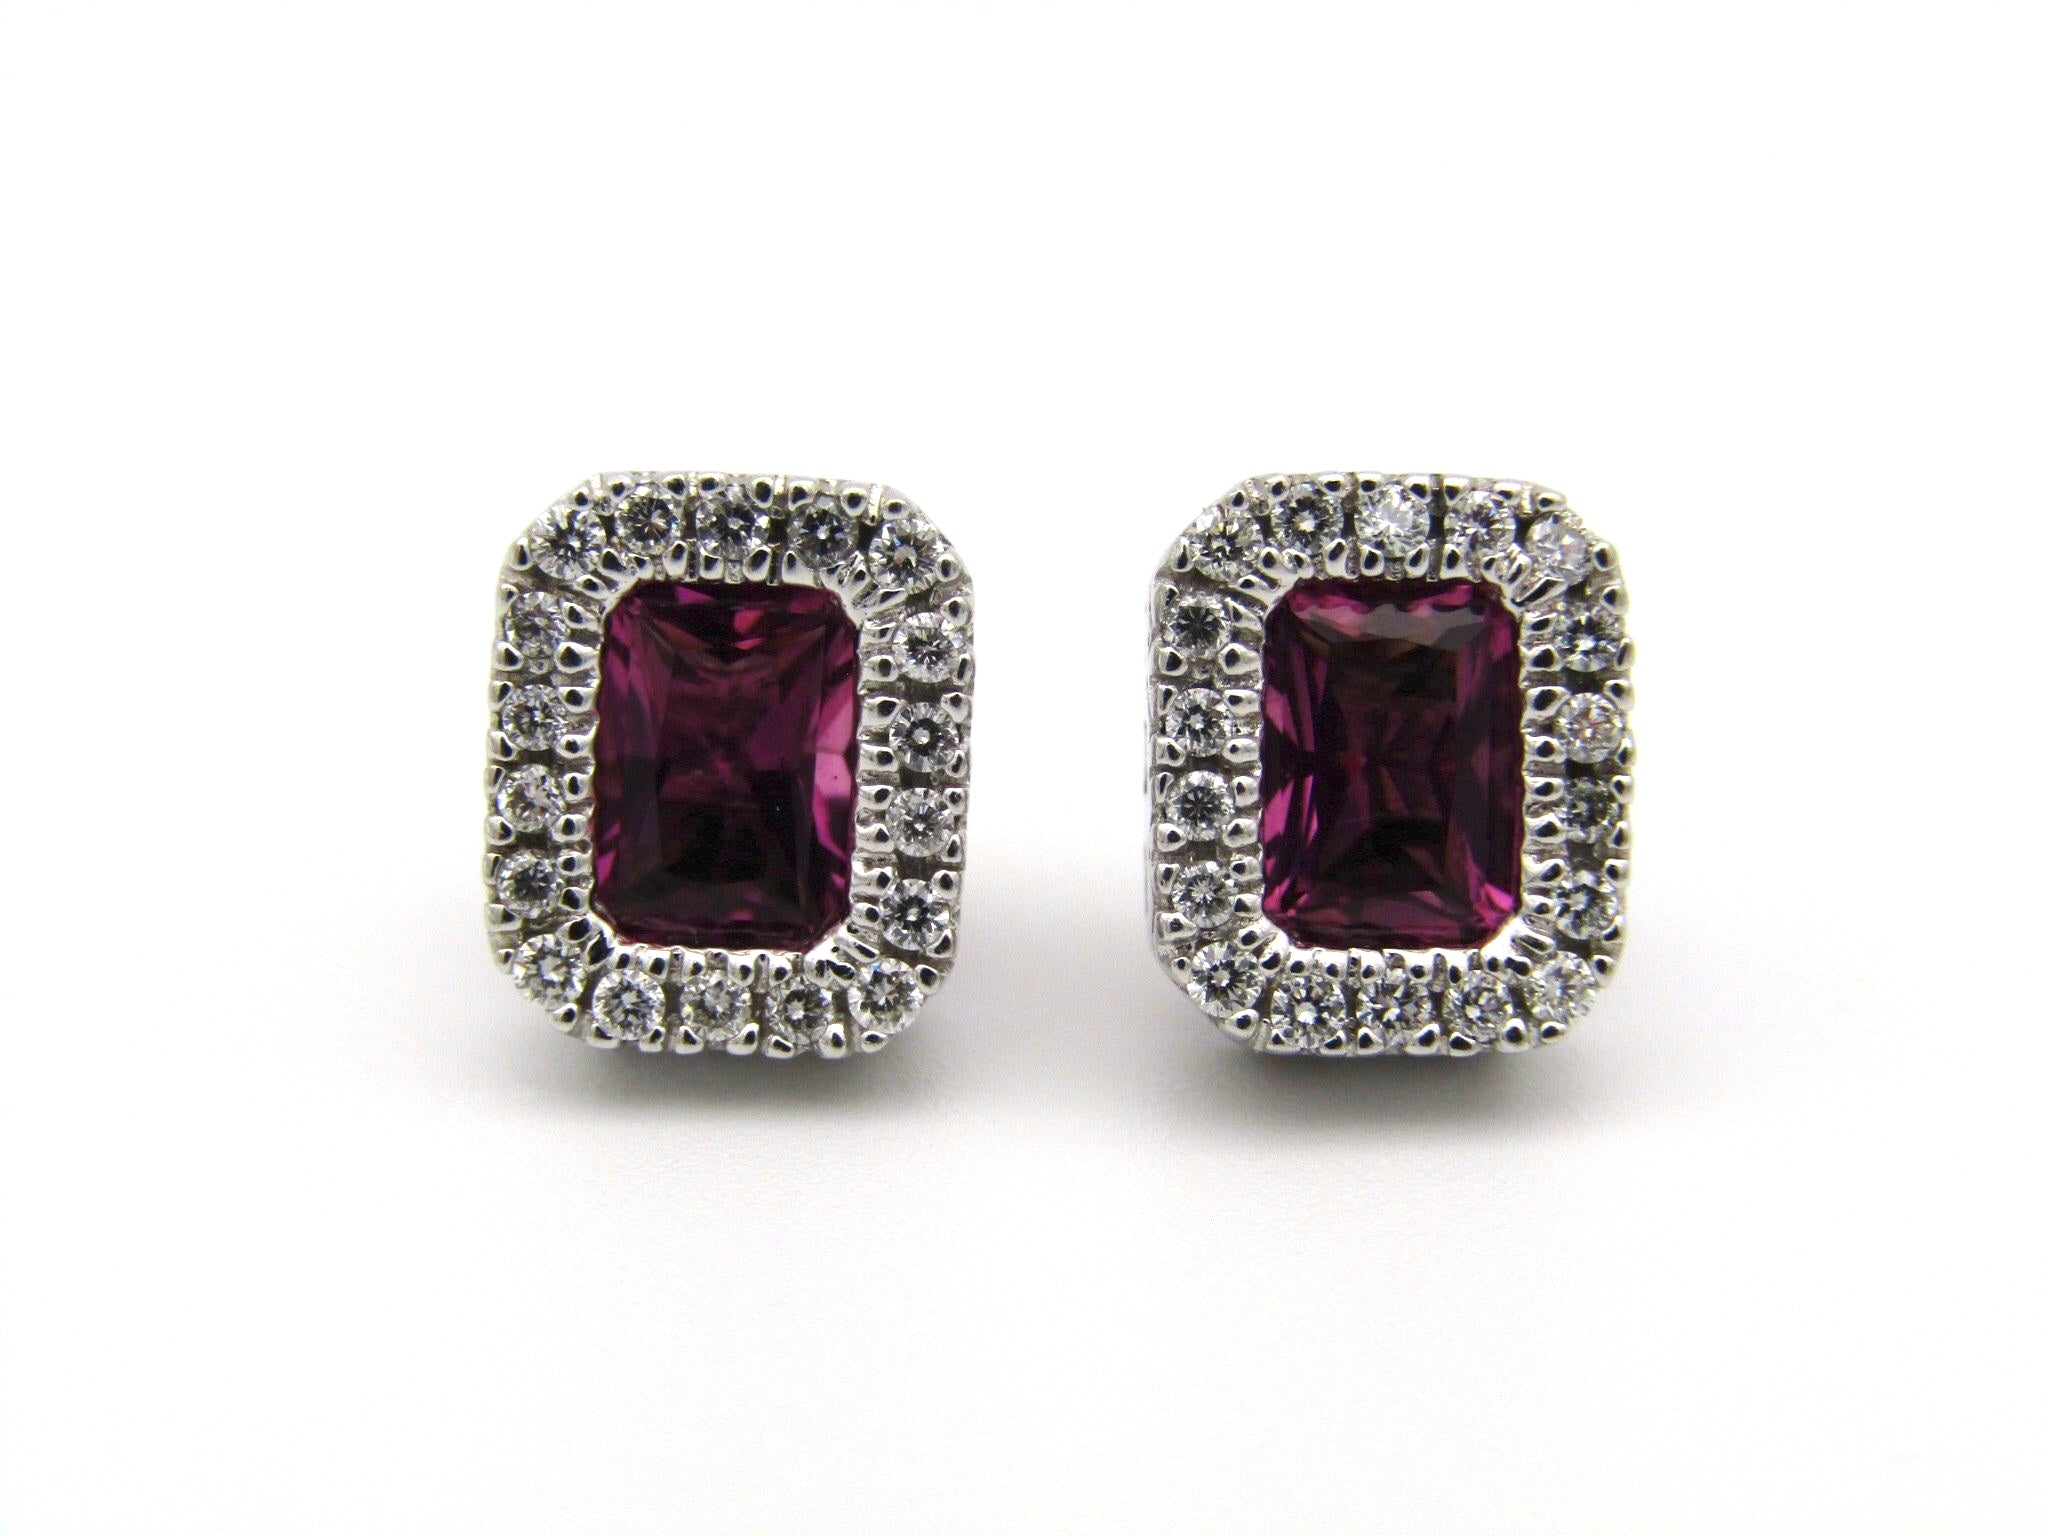 14kt gold Pink Tourmaline and diamonds earrings.